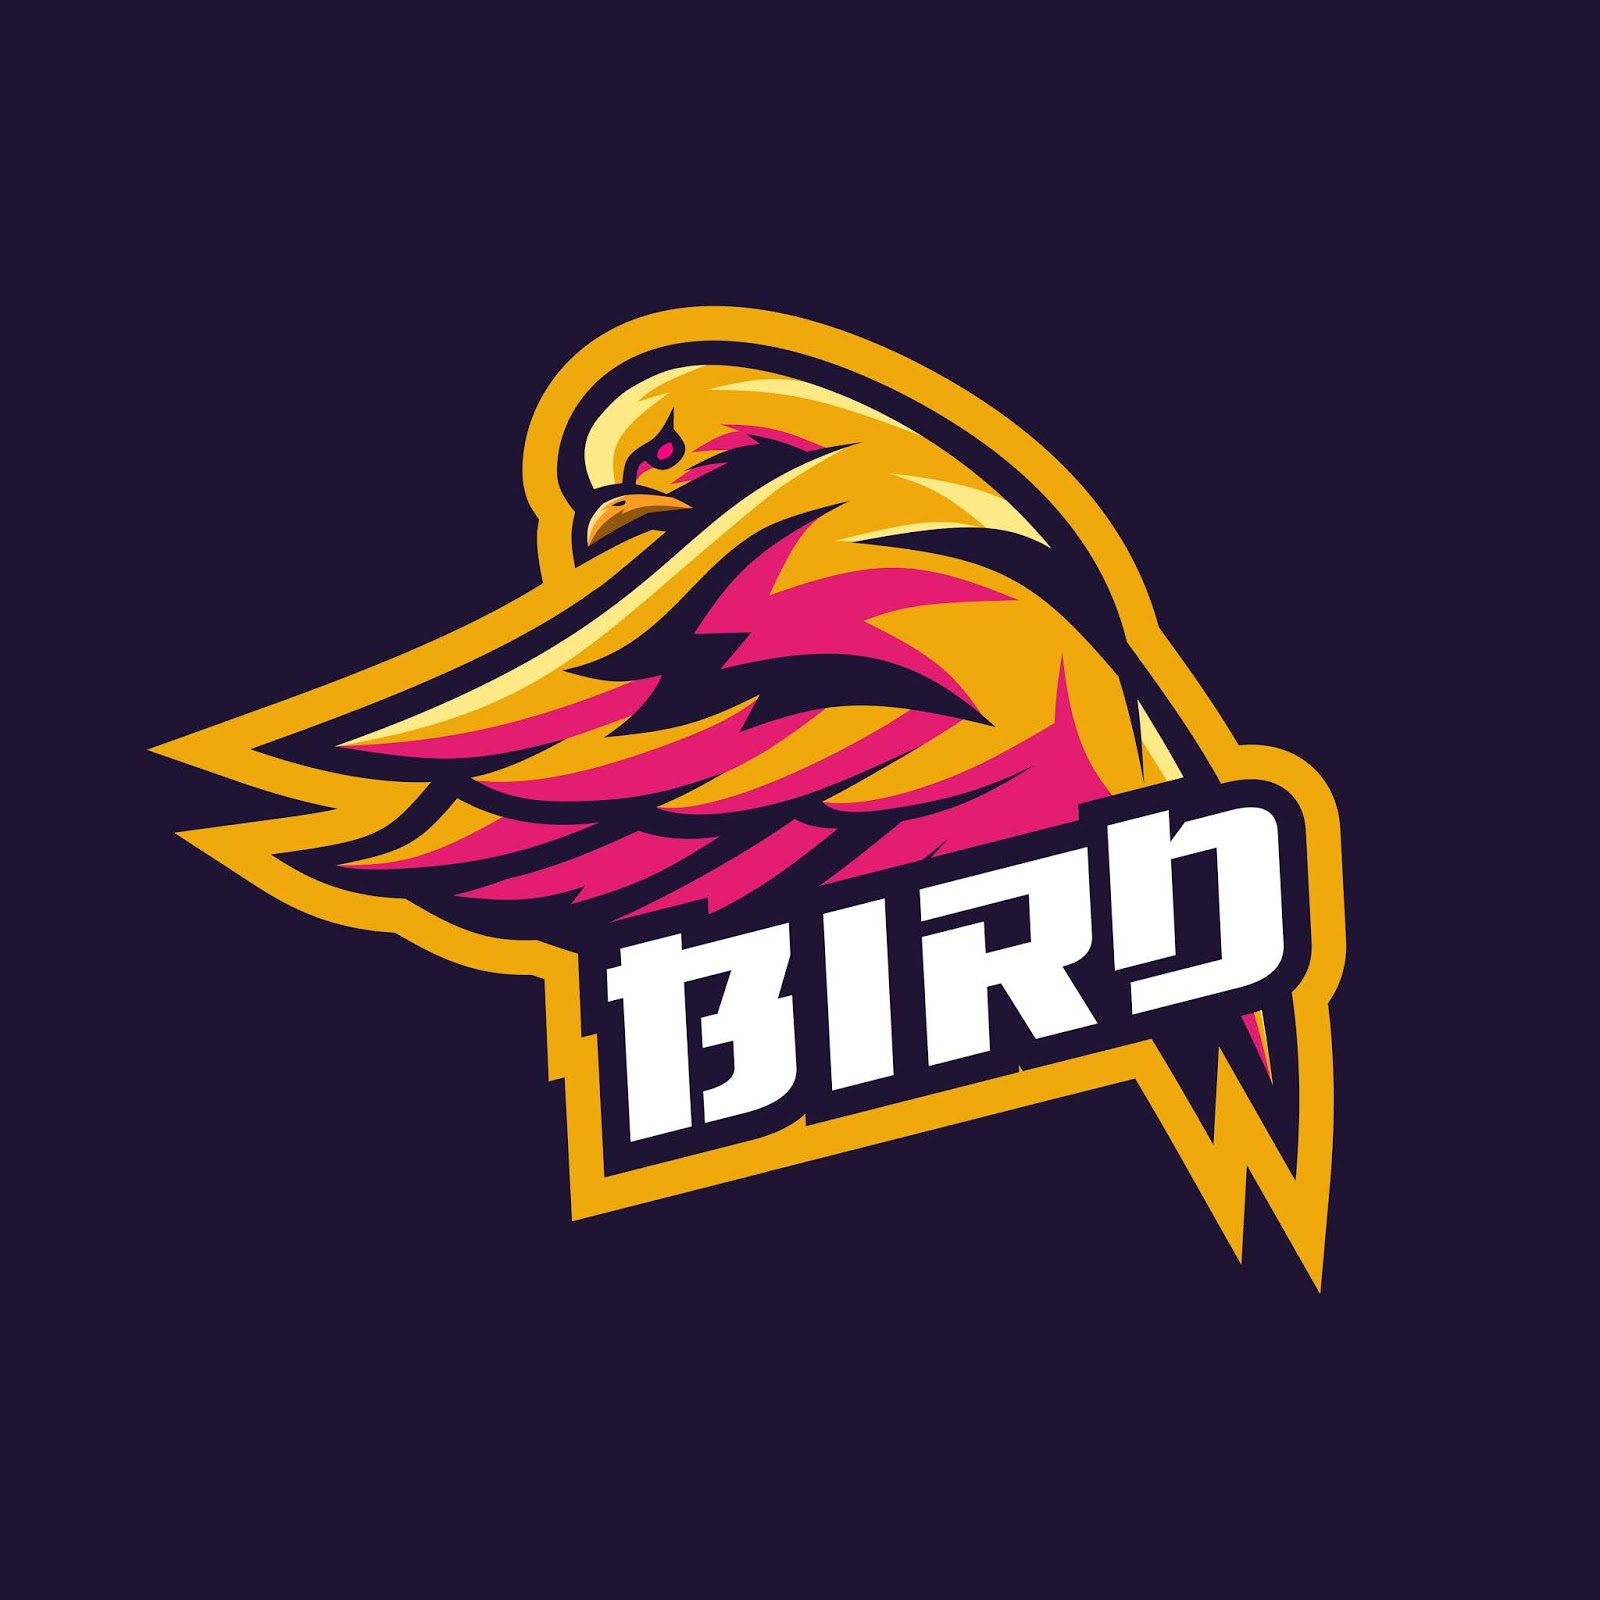 Bird Esport Logo Free Download Vector CDR, AI, EPS and PNG Formats